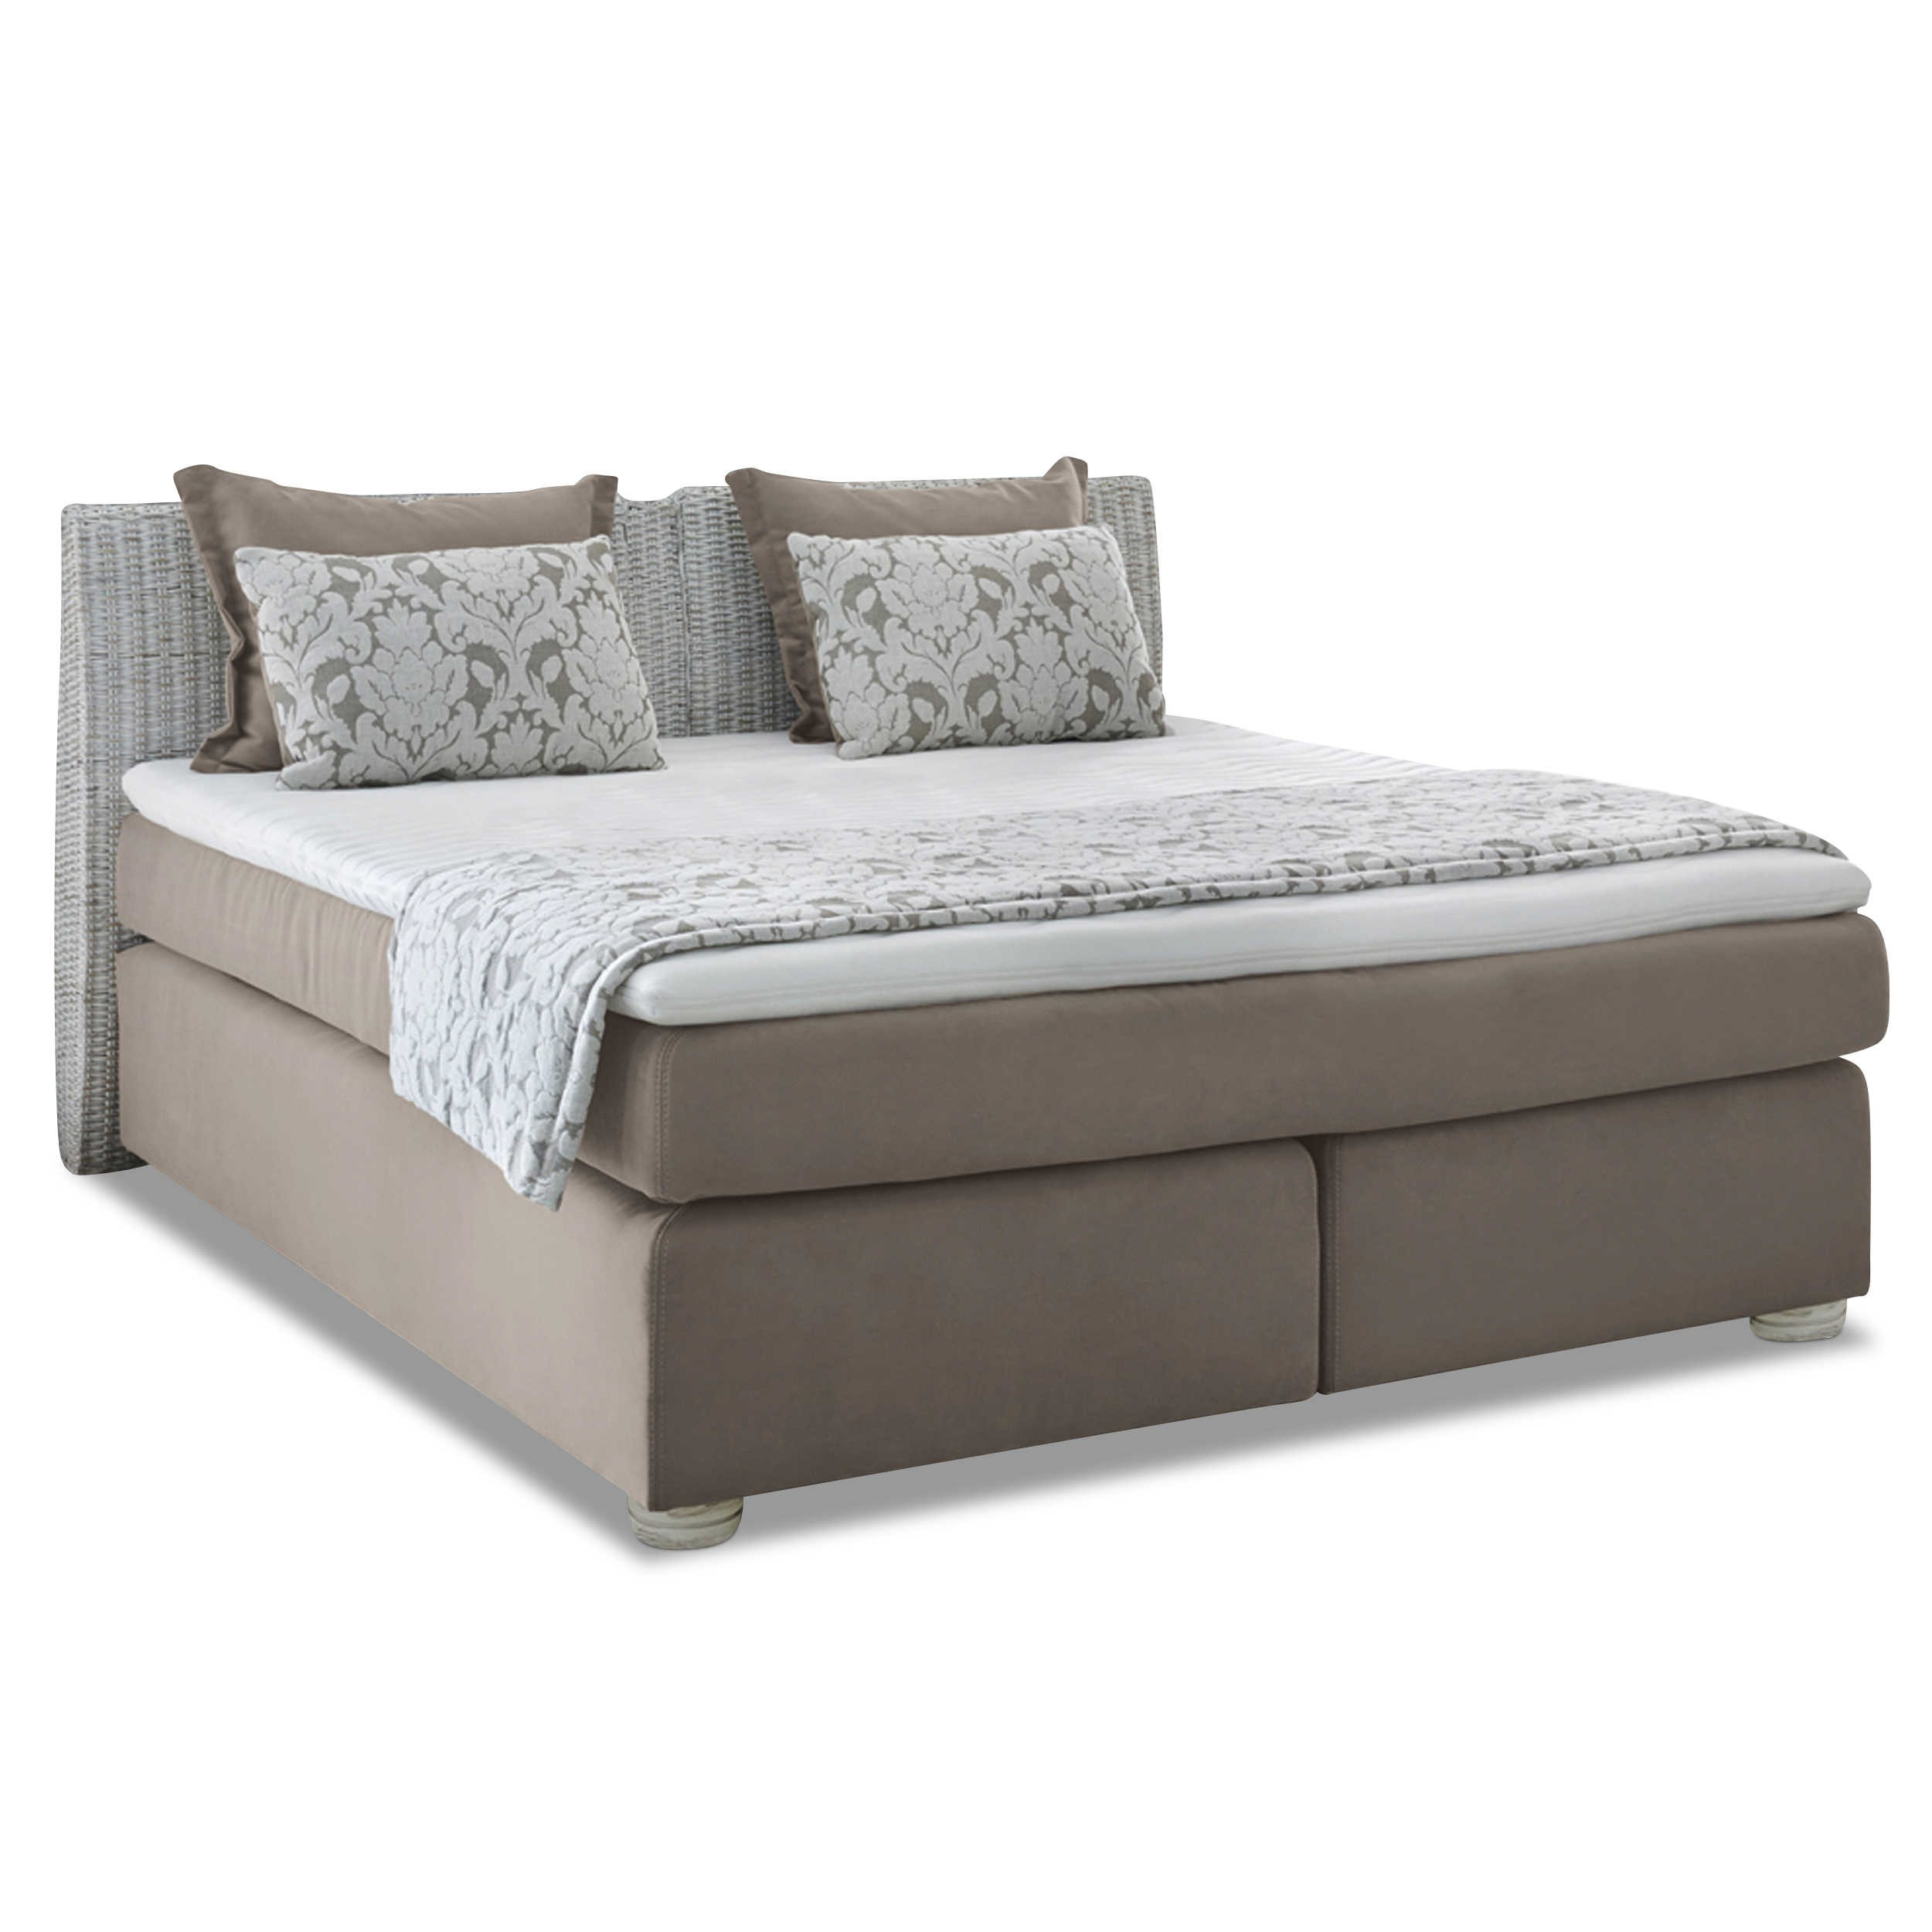 boxspringbett celina 180 x 200 cm beige stoff online kaufen bei woonio. Black Bedroom Furniture Sets. Home Design Ideas